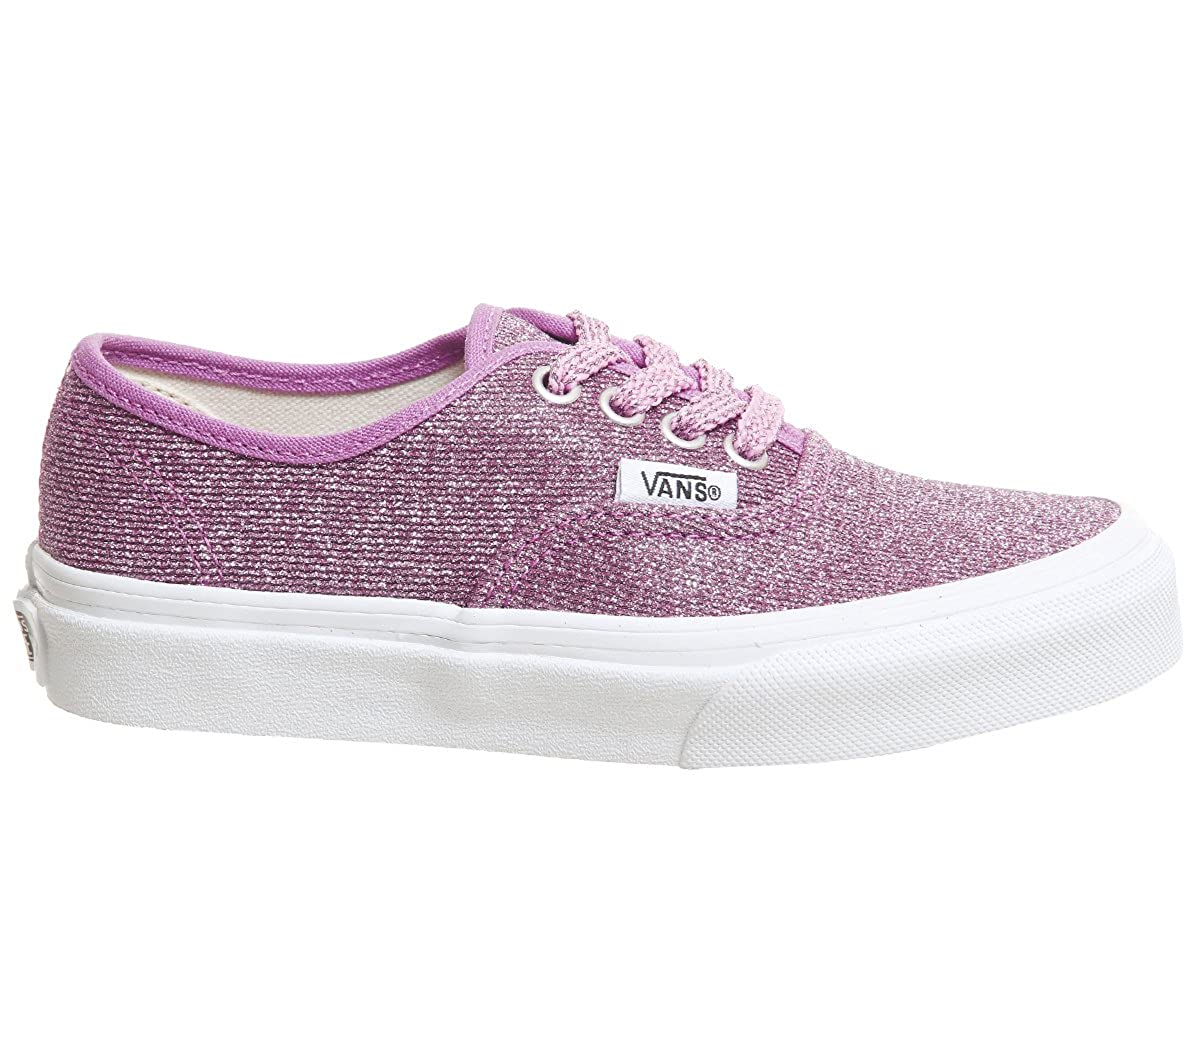 ce9284768d8f60 Amazon.com  Vans Kids Lurex Glitter Pink True White Authentic Sneakers   Shoes